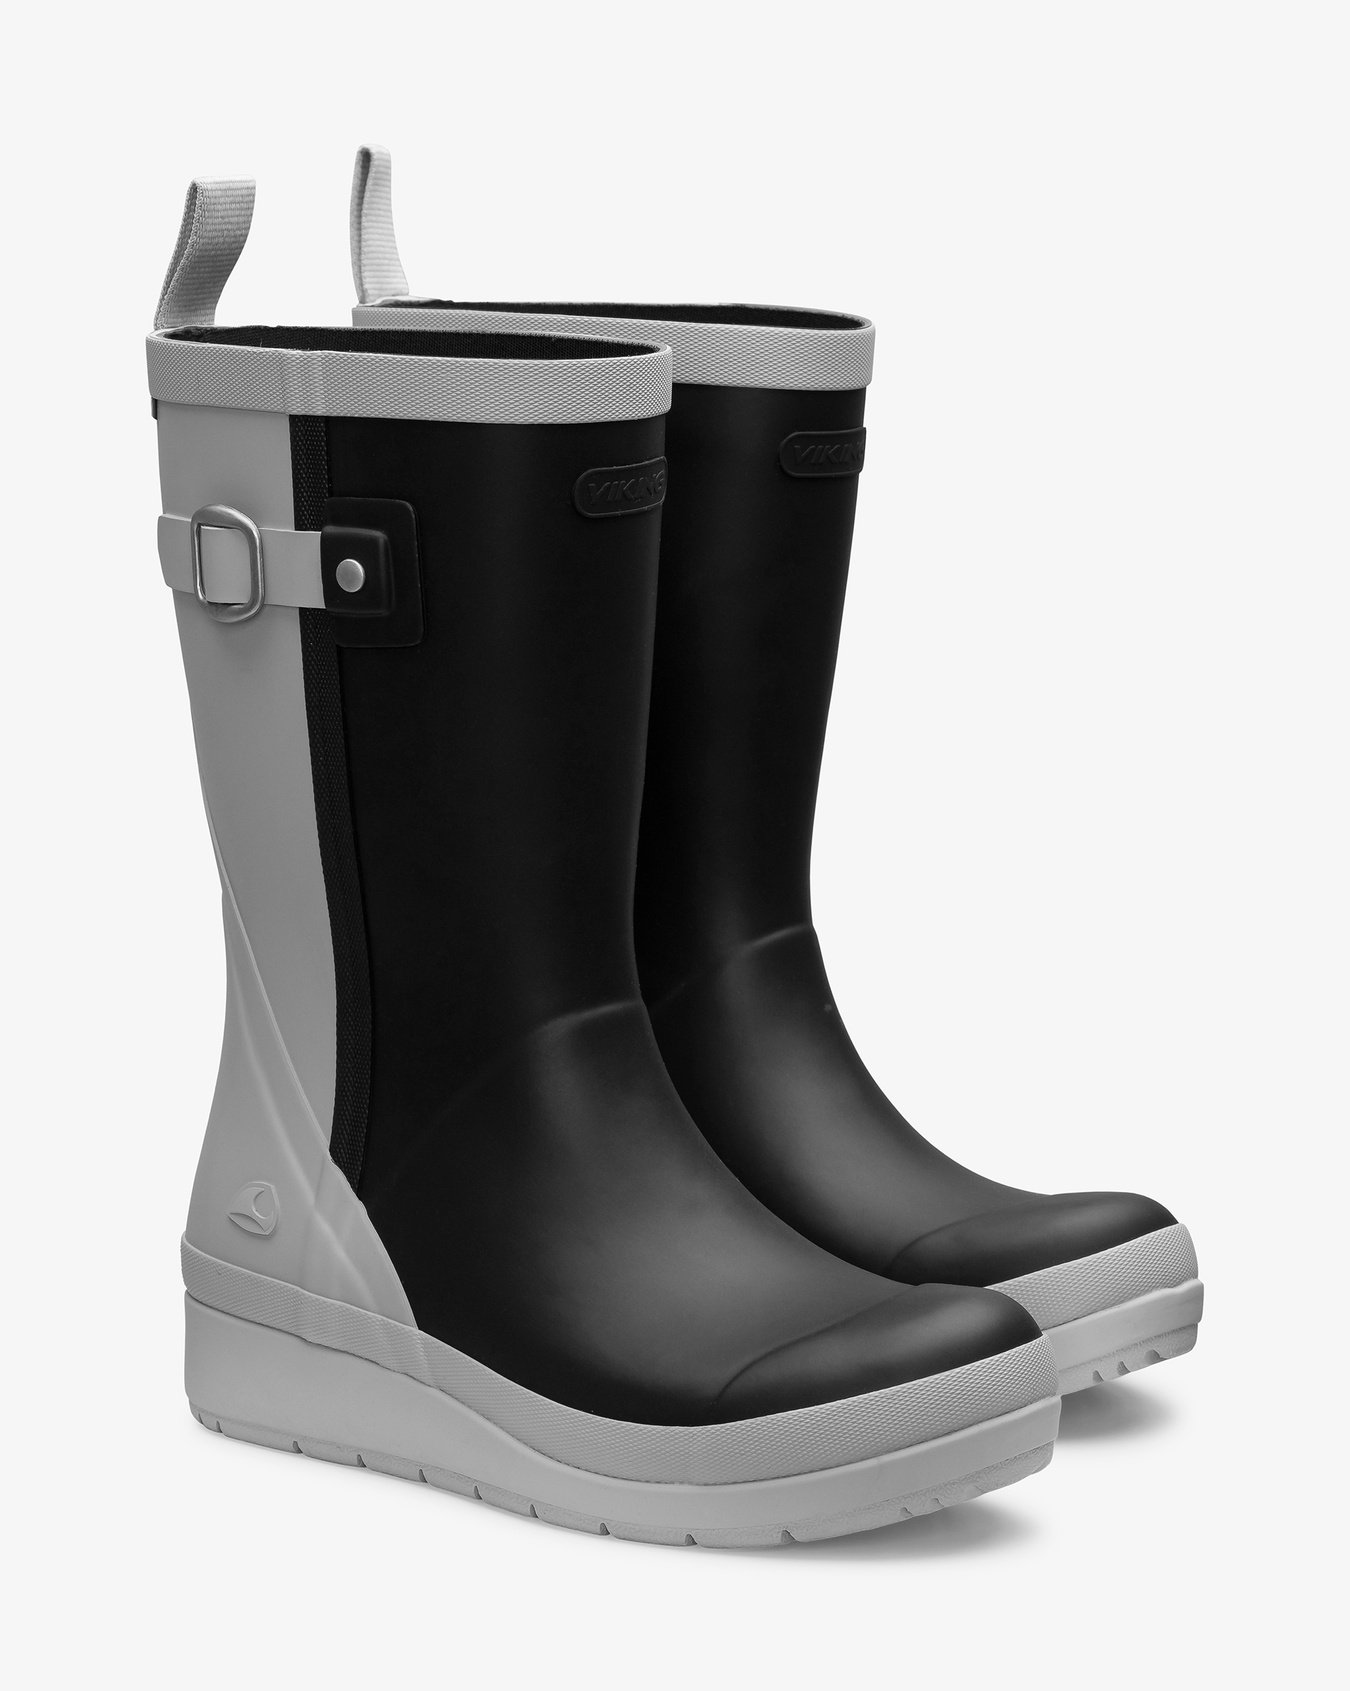 Fagerborg Rubber Boot